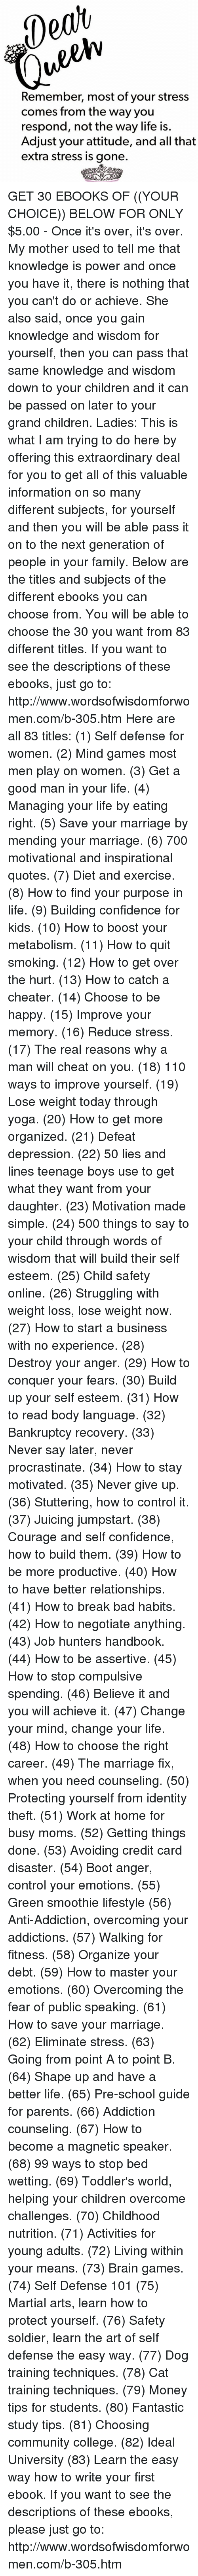 Bad, Bodies , and Brains: Remember, most of your stress  comes from the way you  respond, not the way life is.  Adjust your attitude, and all that  extra stress is gone. GET 30 EBOOKS OF ((YOUR CHOICE)) BELOW FOR ONLY $5.00 - Once it's over, it's over.   My mother used to tell me that knowledge is power and once you have it, there is nothing that you can't do or achieve. She also said, once you gain knowledge and wisdom for yourself, then you can pass that same knowledge and wisdom down to your children and it can be passed on later to your grand children.   Ladies: This is what I am trying to do here by offering this extraordinary deal for you to get all of this valuable information on so many different subjects, for yourself and then you will be able pass it on to the next generation of people in your family. Below are the titles and subjects of the different ebooks you can choose from. You will be able to choose the 30 you want from 83 different titles. If you want to see the descriptions of these ebooks, just go to: http://www.wordsofwisdomforwomen.com/b-305.htm   Here are all 83 titles: (1) Self defense for women. (2) Mind games most men play on women. (3) Get a good man in your life. (4) Managing your life by eating right. (5) Save your marriage by mending your marriage. (6) 700 motivational and inspirational quotes. (7) Diet and exercise. (8) How to find your purpose in life. (9) Building confidence for kids. (10) How to boost your metabolism. (11) How to quit smoking. (12) How to get over the hurt. (13) How to catch a cheater. (14) Choose to be happy. (15) Improve your memory. (16) Reduce stress. (17) The real reasons why a man will cheat on you. (18) 110 ways to improve yourself. (19) Lose weight today through yoga. (20) How to get more organized. (21) Defeat depression. (22) 50 lies and lines teenage boys use to get what they want from your daughter. (23) Motivation made simple. (24) 500 things to say to your child through words of wisdom that will build their self esteem.   (25) Child safety online. (26) Struggling with weight loss, lose weight now. (27) How to start a business with no experience. (28) Destroy your anger. (29) How to conquer your fears. (30) Build up your self esteem. (31) How to read body language. (32) Bankruptcy recovery. (33) Never say later, never procrastinate. (34) How to stay motivated. (35) Never give up. (36) Stuttering, how to control it. (37) Juicing jumpstart. (38) Courage and self confidence, how to build them. (39) How to be more productive. (40) How to have better relationships. (41) How to break bad habits. (42) How to negotiate anything. (43) Job hunters handbook. (44) How to be assertive. (45) How to stop compulsive spending. (46) Believe it and you will achieve it. (47) Change your mind, change your life. (48) How to choose the right career. (49) The marriage fix, when you need counseling. (50) Protecting yourself from identity theft. (51) Work at home for busy moms. (52) Getting things done. (53) Avoiding credit card disaster.   (54) Boot anger, control your emotions. (55) Green smoothie lifestyle (56) Anti-Addiction, overcoming your addictions. (57) Walking for fitness. (58) Organize your debt. (59) How to master your emotions. (60) Overcoming the fear of public speaking. (61) How to save your marriage. (62) Eliminate stress. (63) Going from point A to point B. (64) Shape up and have a better life. (65) Pre-school guide for parents. (66) Addiction counseling. (67) How to become a magnetic speaker. (68) 99 ways to stop bed wetting. (69) Toddler's world, helping your children overcome challenges. (70) Childhood nutrition. (71) Activities for young adults. (72) Living within your means. (73) Brain games. (74) Self Defense 101 (75) Martial arts, learn how to protect yourself. (76) Safety soldier, learn the art of self defense the easy way. (77) Dog training techniques. (78) Cat training techniques. (79) Money tips for students. (80) Fantastic study tips. (81) Choosing community college. (82) Ideal University (83) Learn the easy way how to write your first ebook.  If you want to see the descriptions of these ebooks, please just go to: http://www.wordsofwisdomforwomen.com/b-305.htm